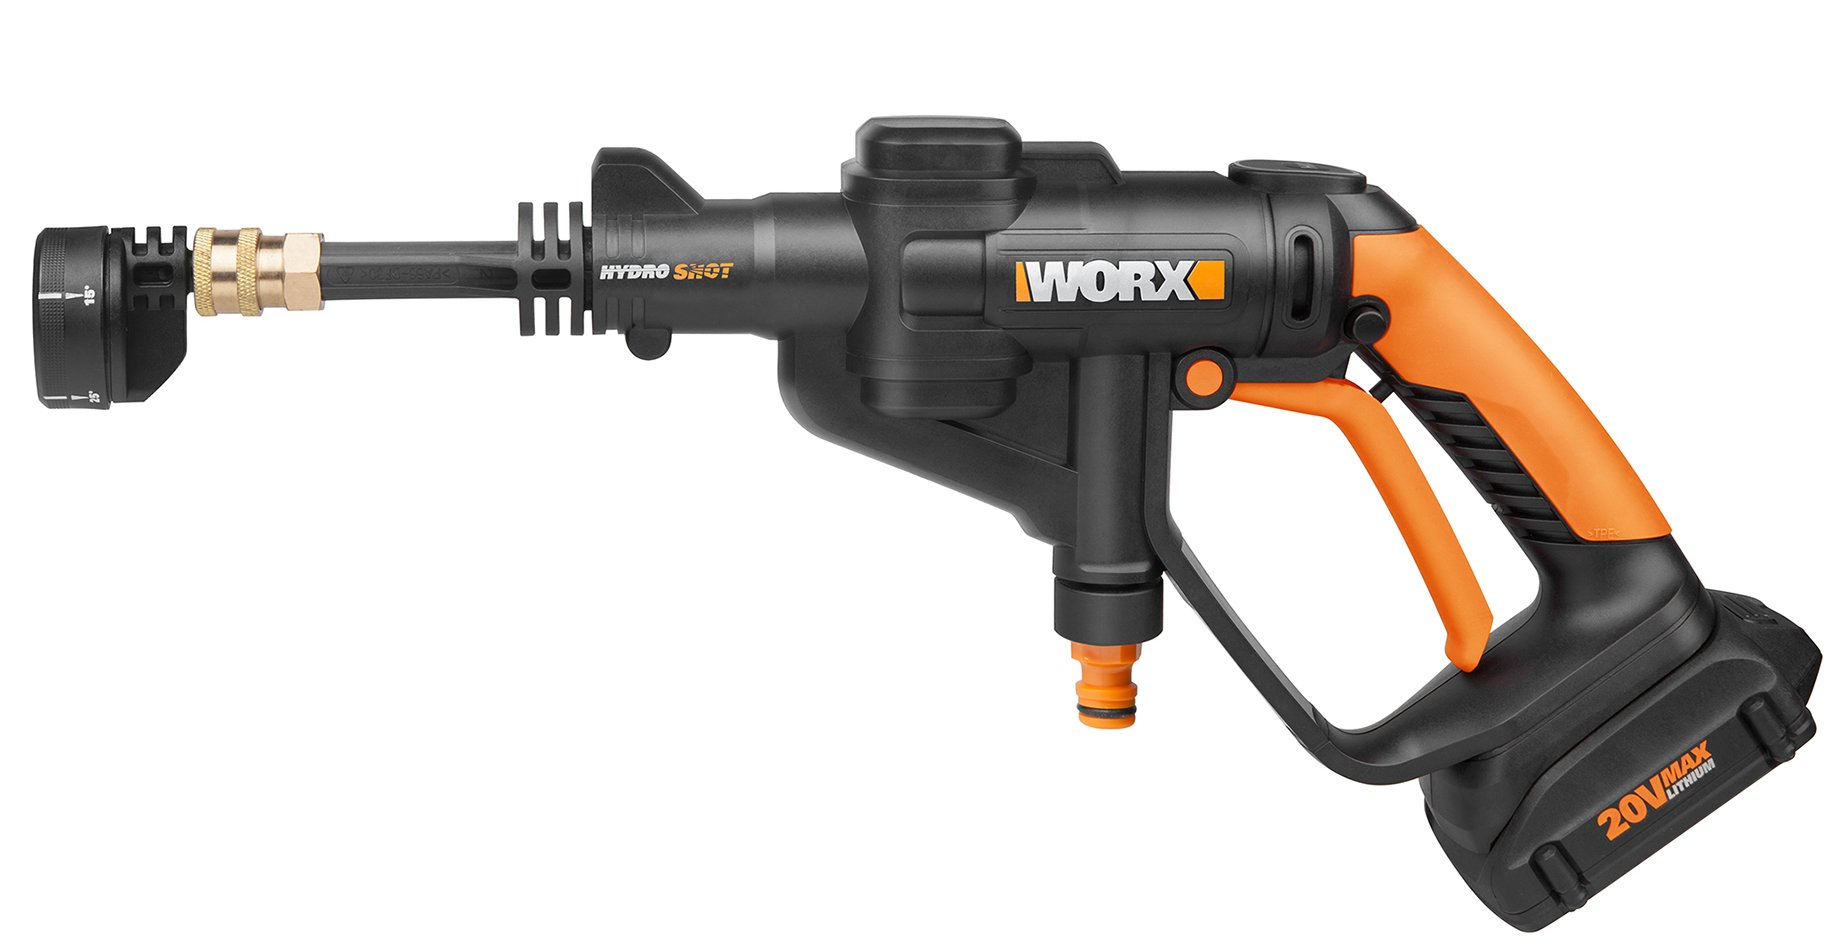 Popular Mechanics Sweepstakes >> WORX Toolshed Blog - Dig deep into the latest news ...